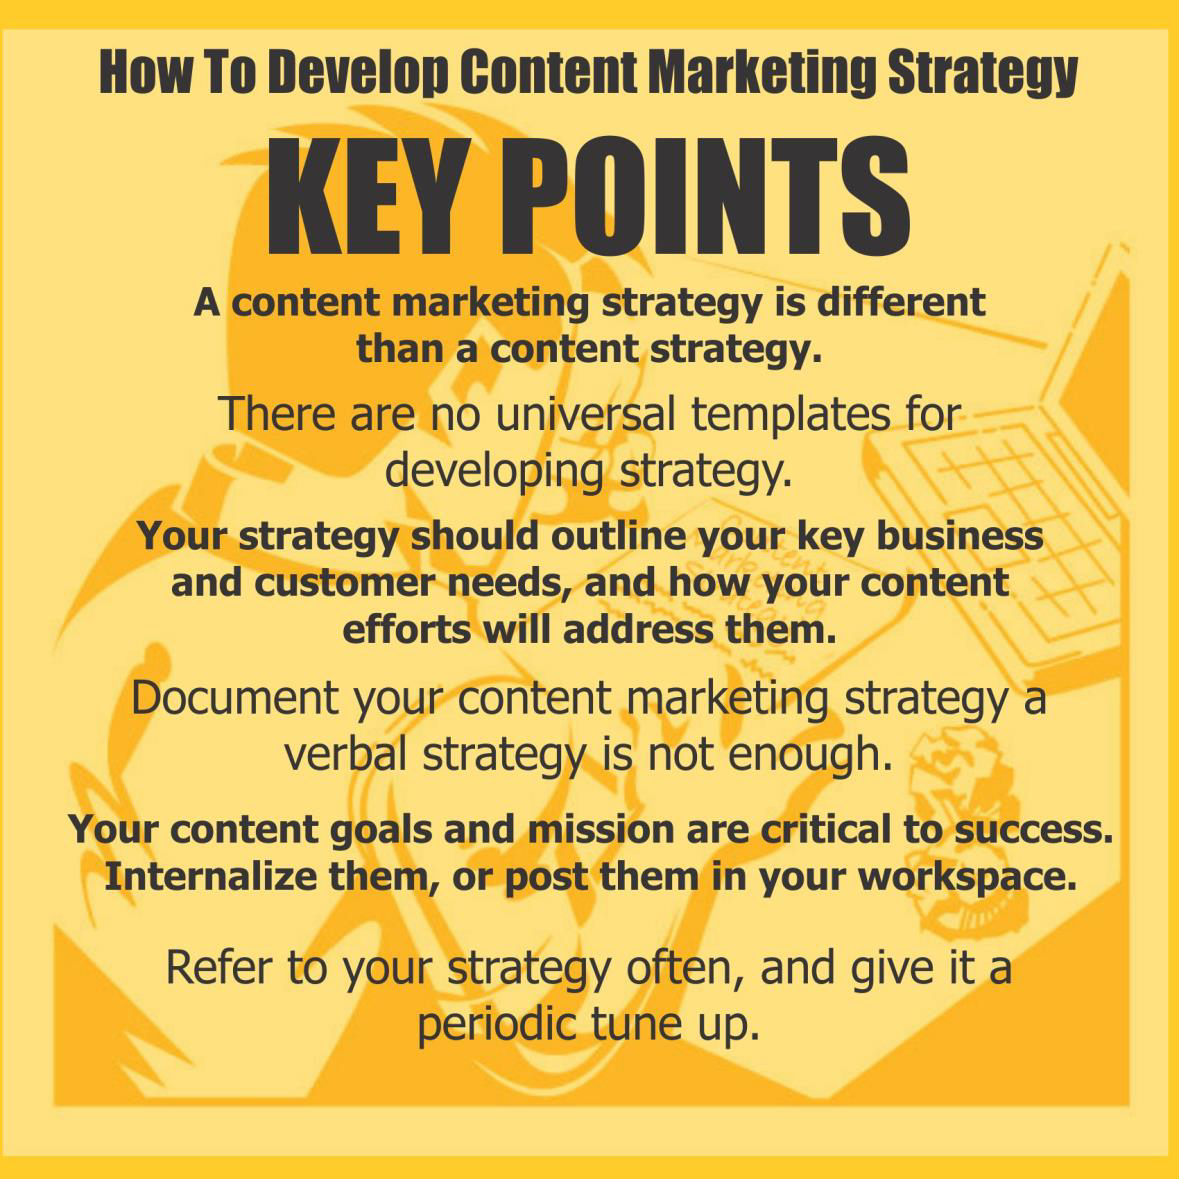 How to develop content